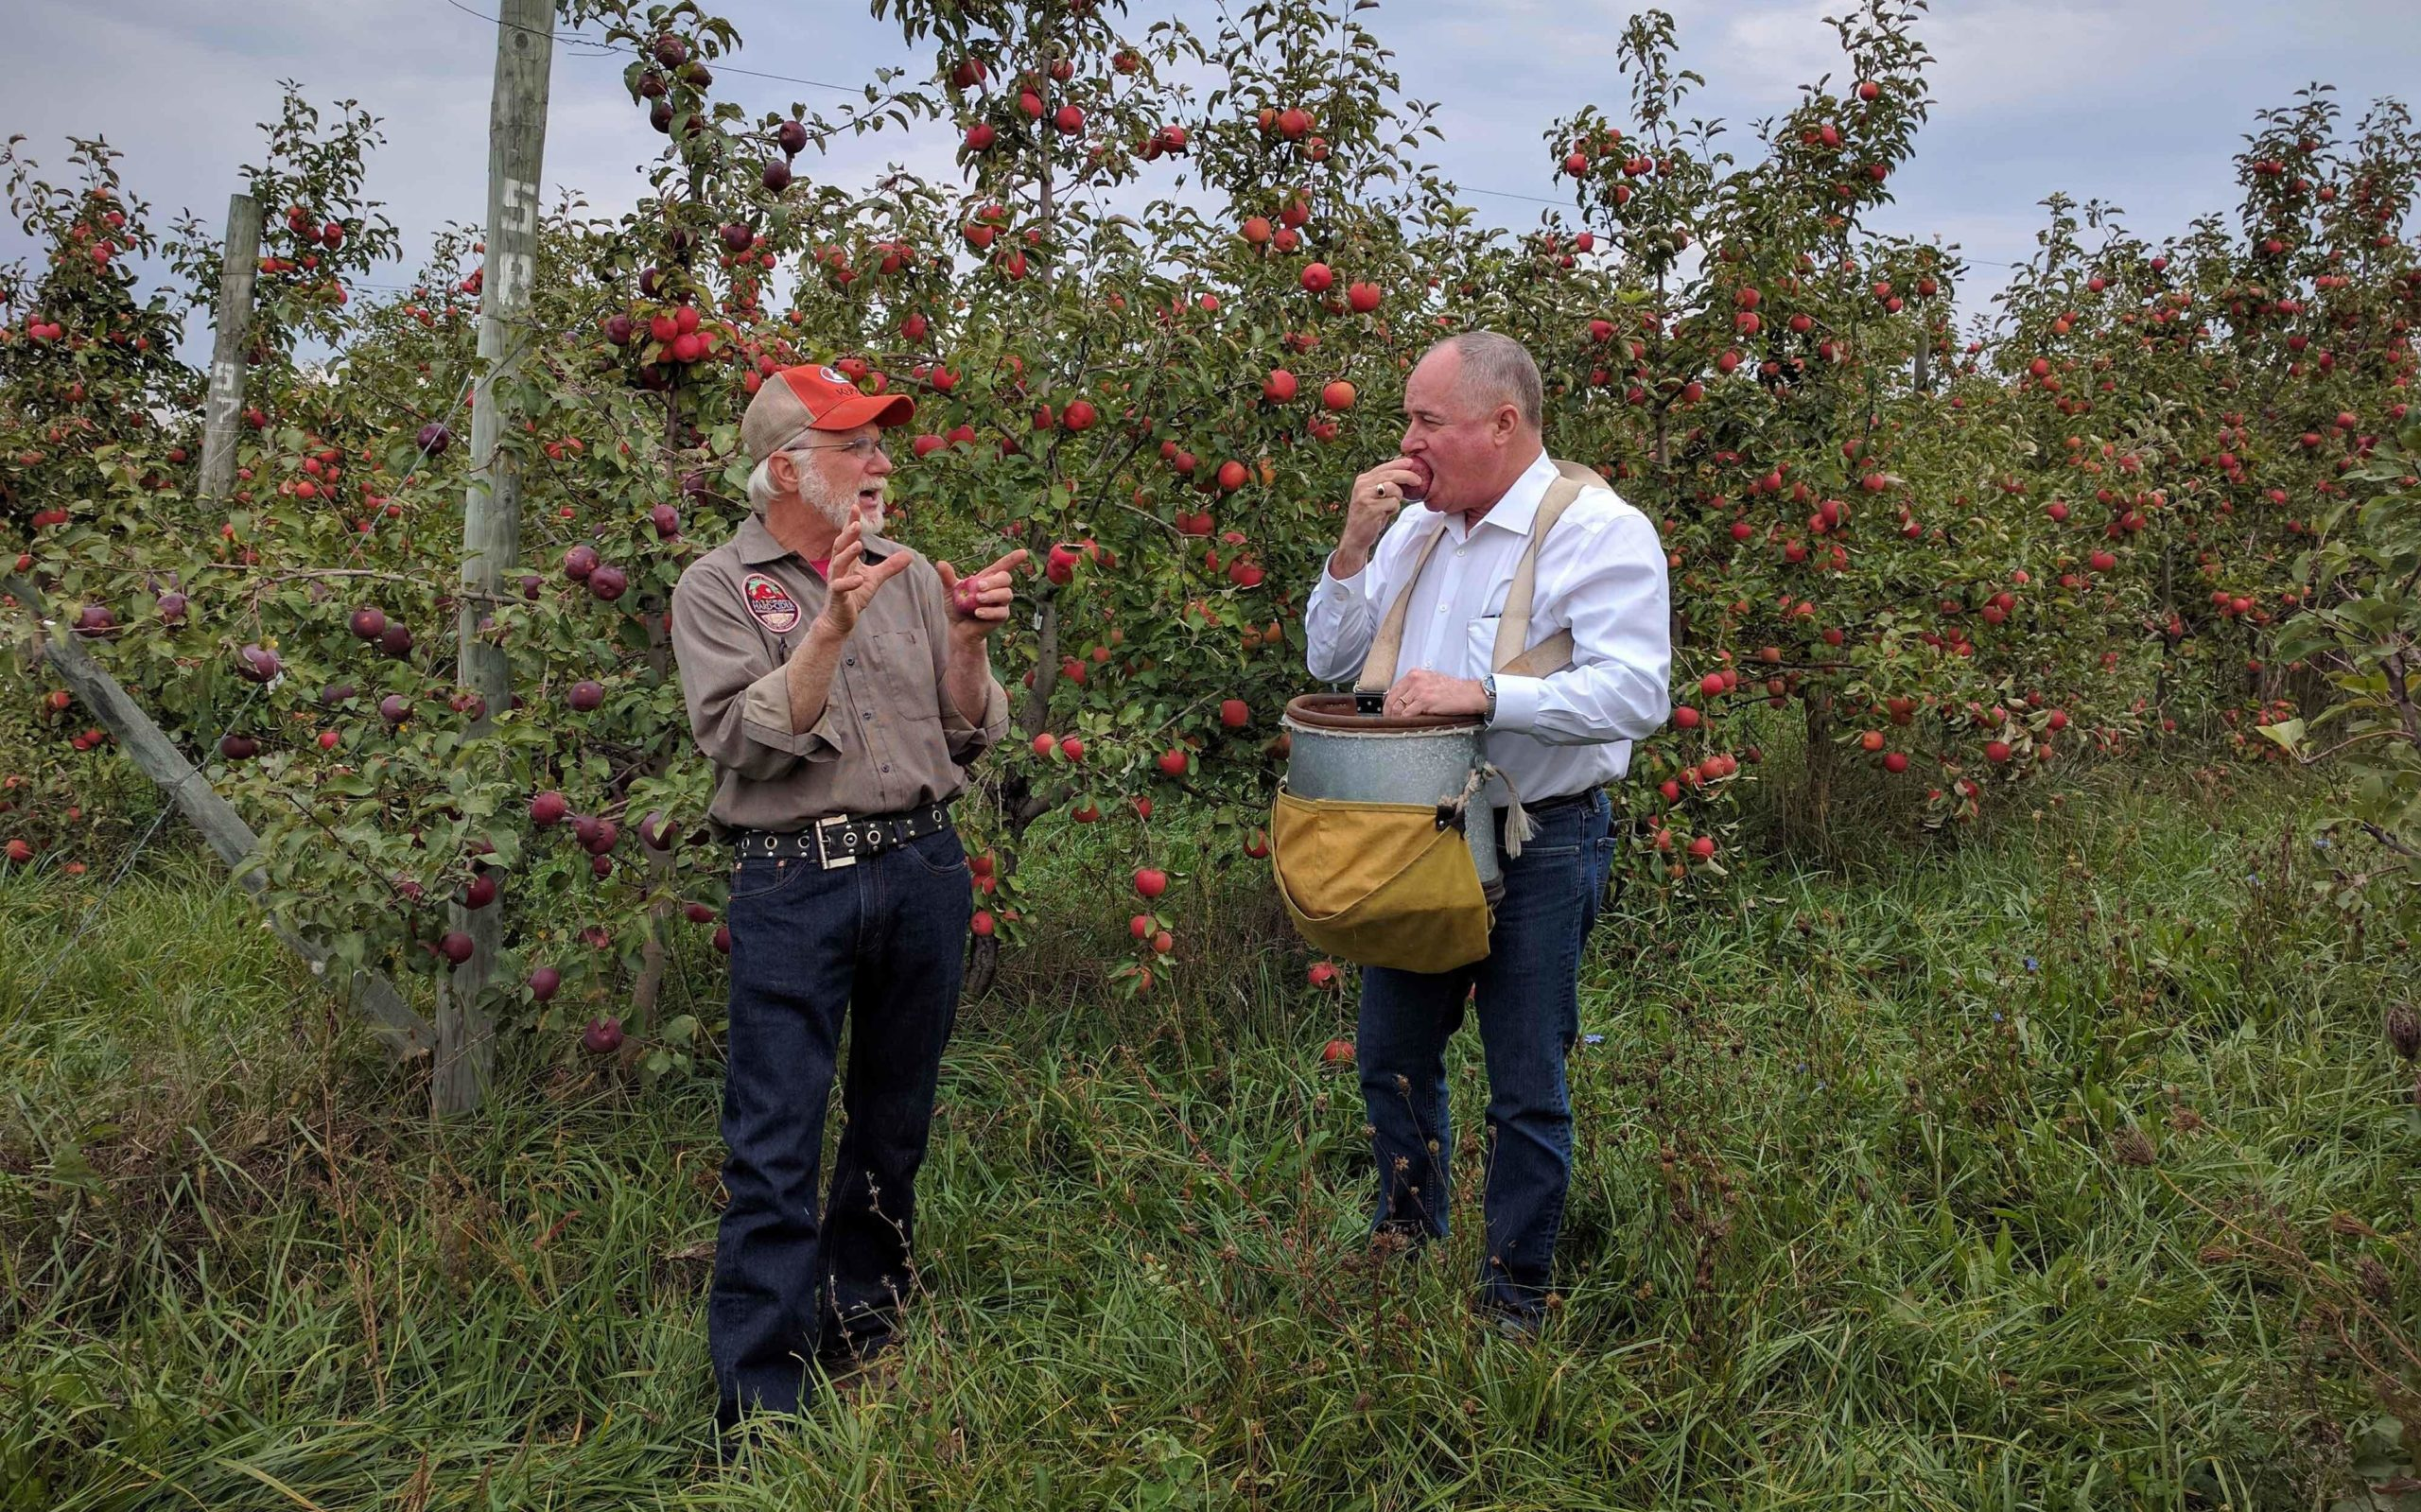 Two men in an apple orchard talking and collecting apples